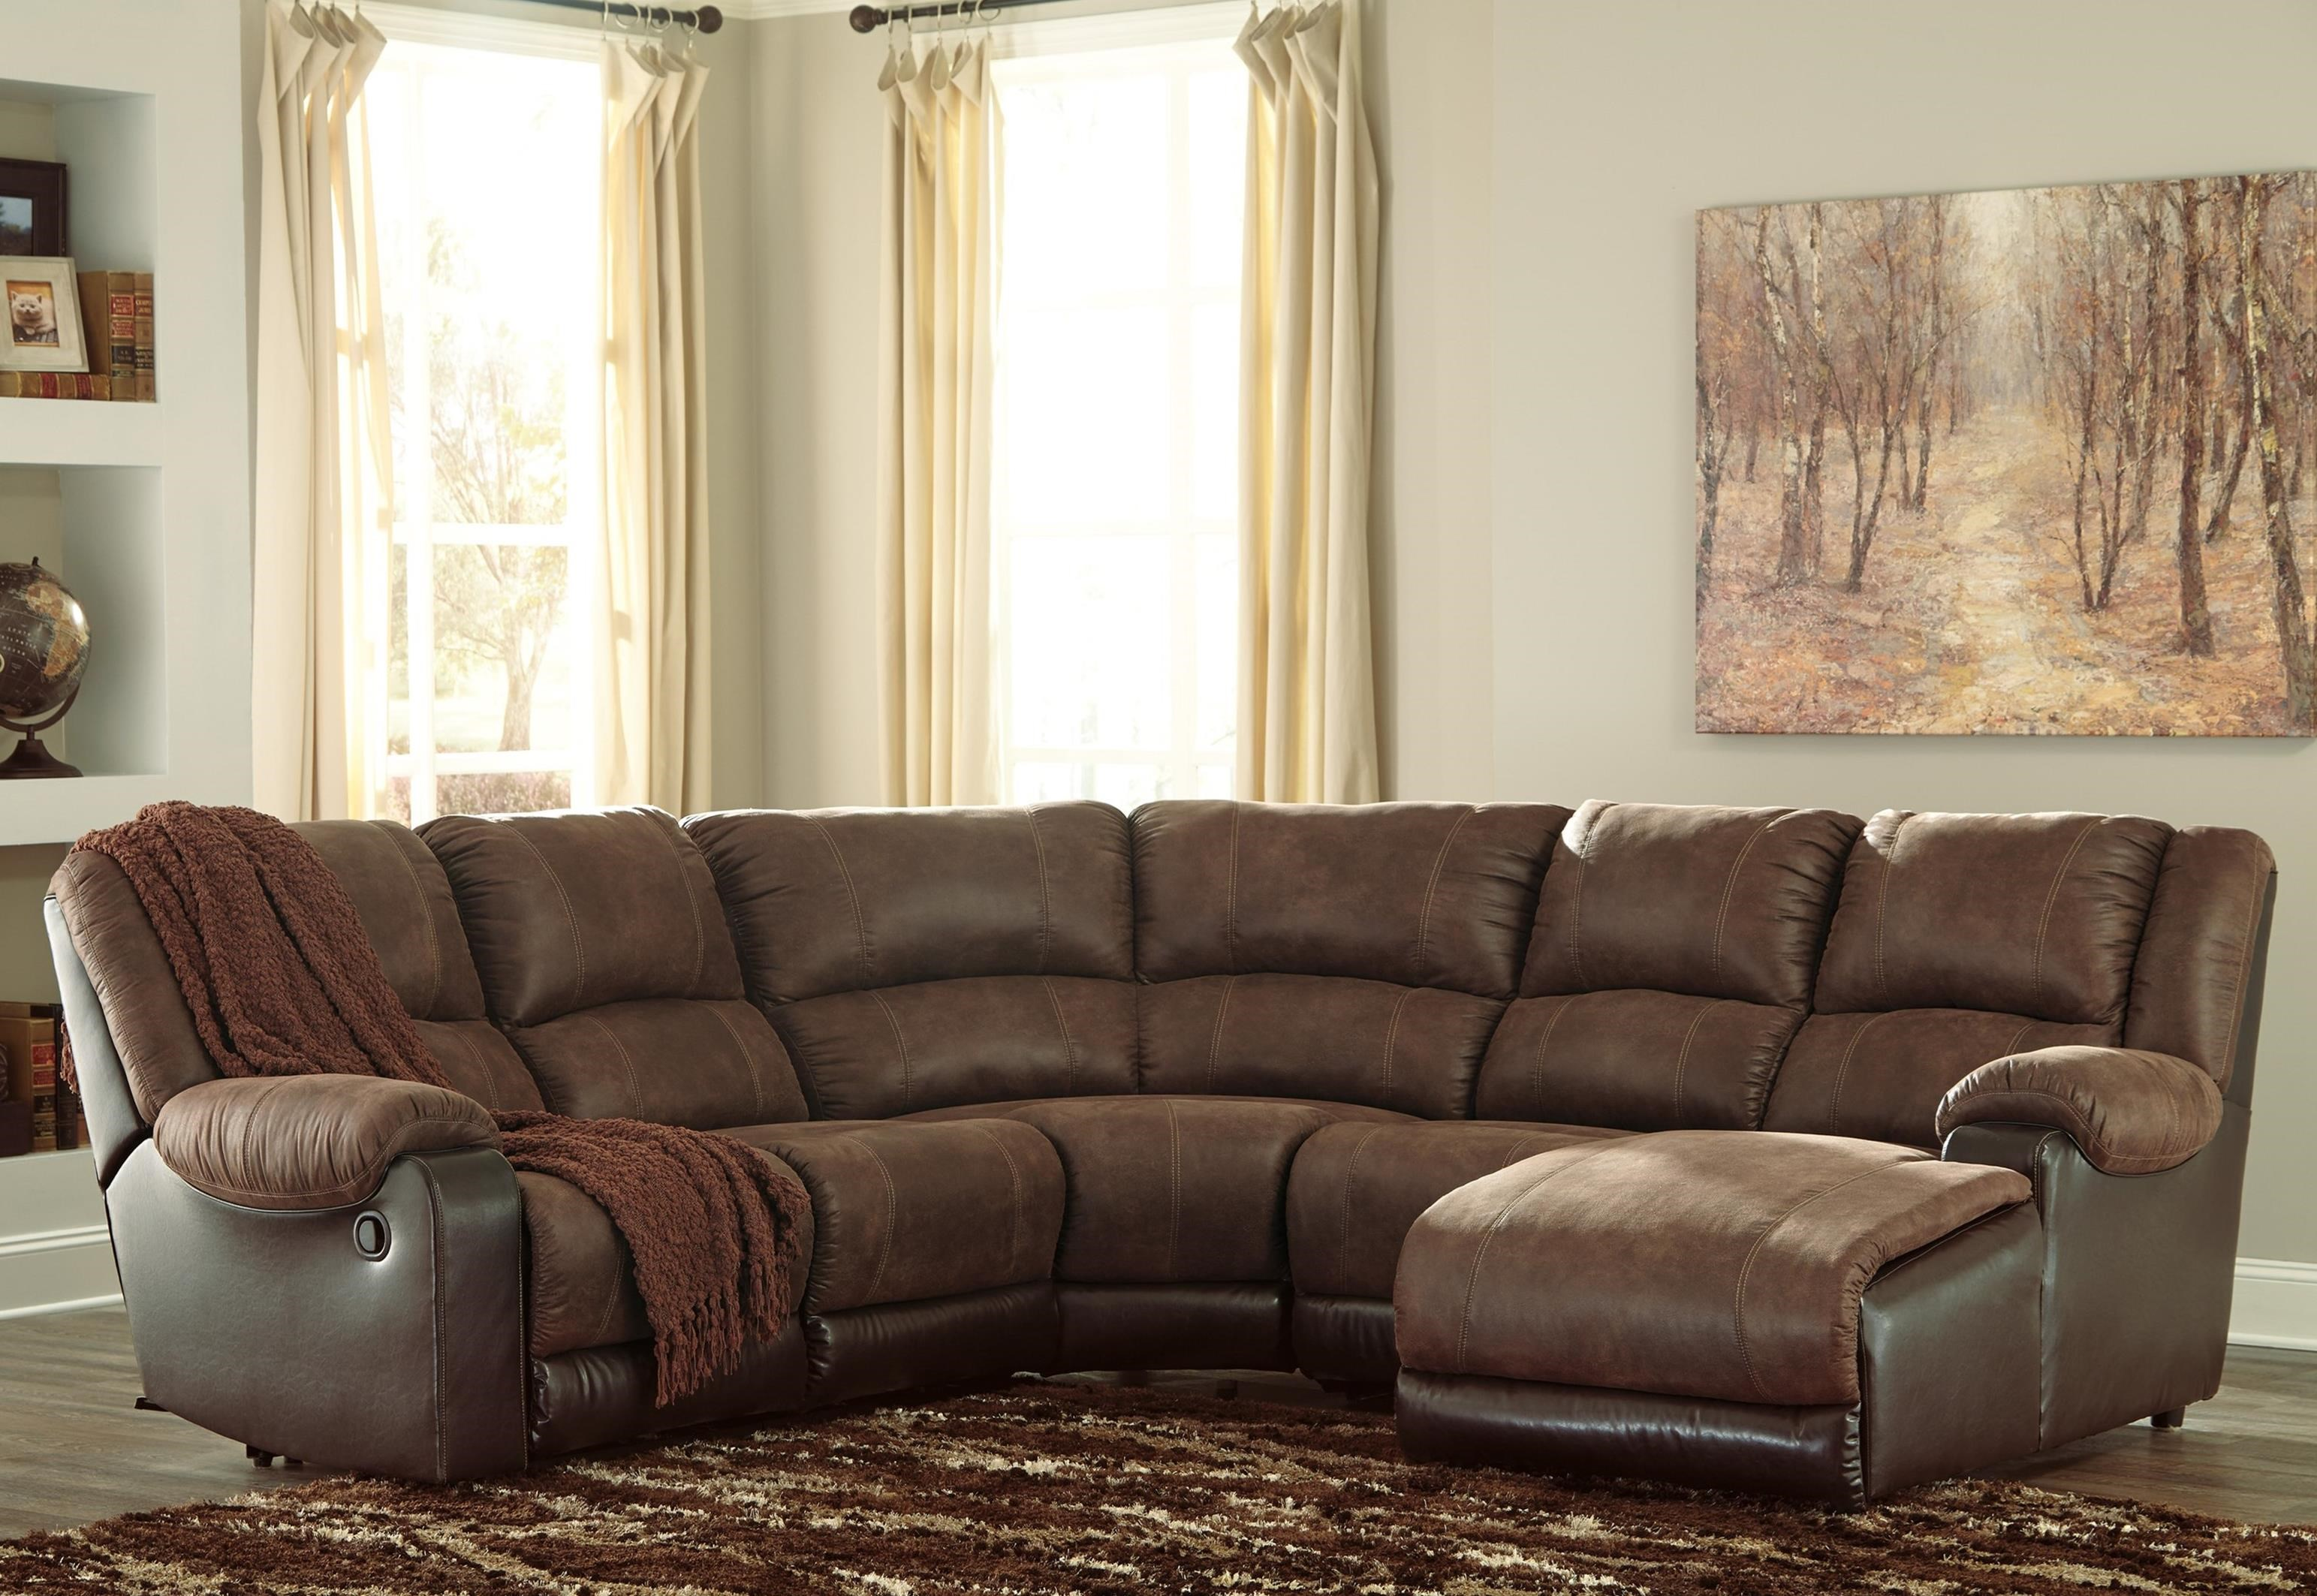 Nantahala Reclining Sectional with Chaise by Signature Design by Ashley at Household Furniture